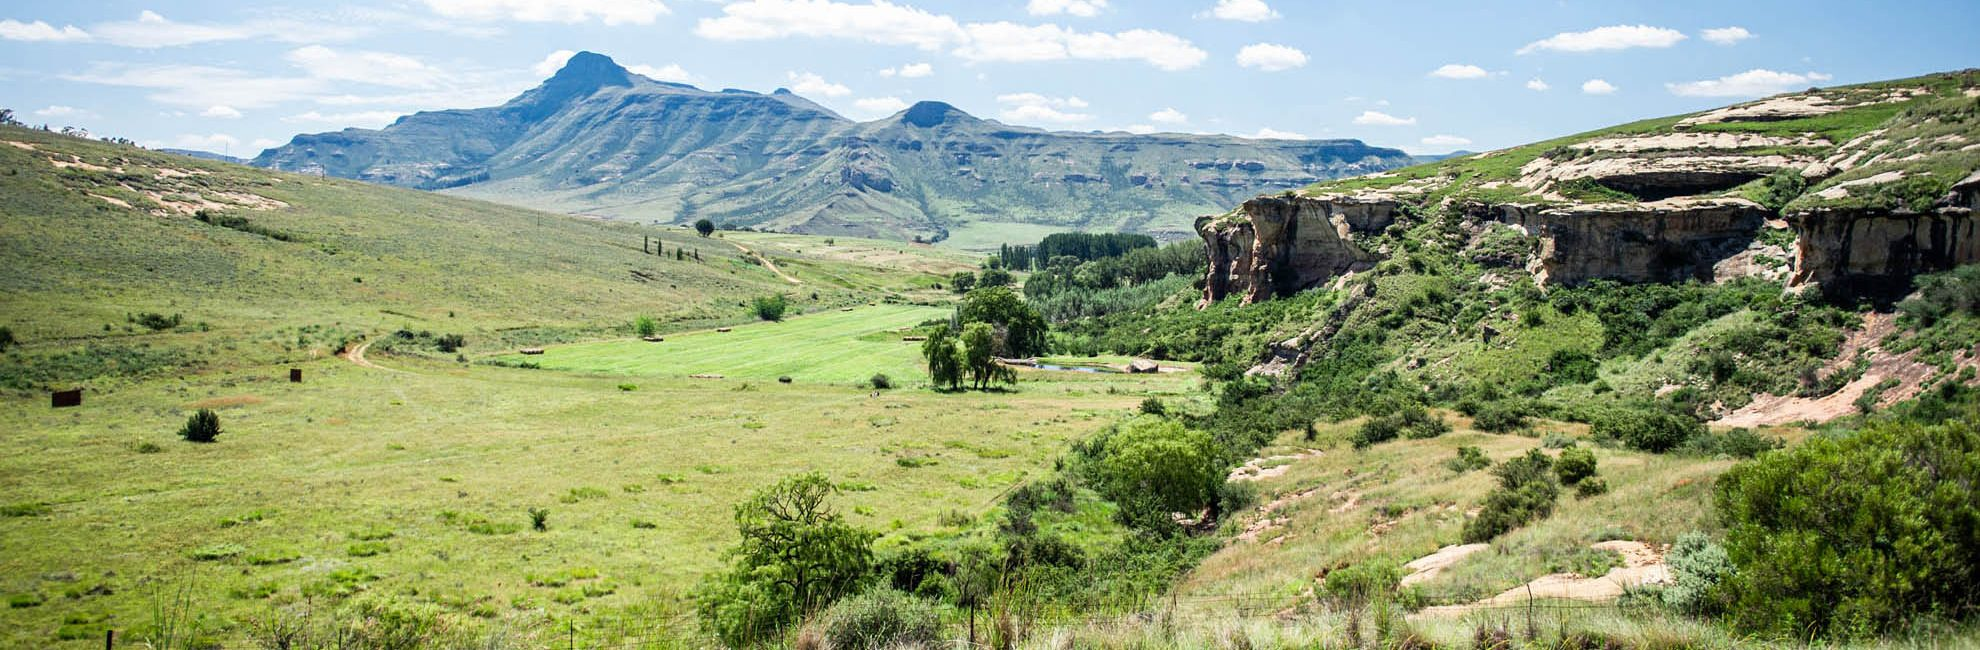 Relax and unwind on our beautiful, tranquil homestead nestled in the foothills of the mighty Maluti Mountain